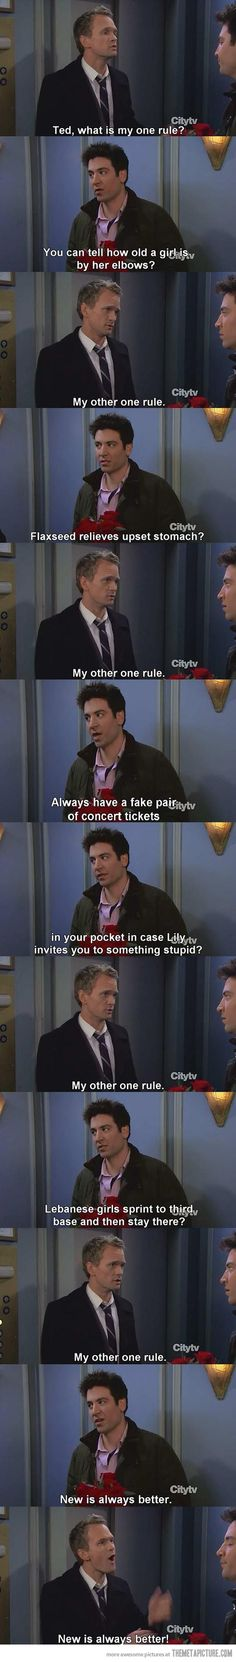 HIMYM. Just saw this episode!